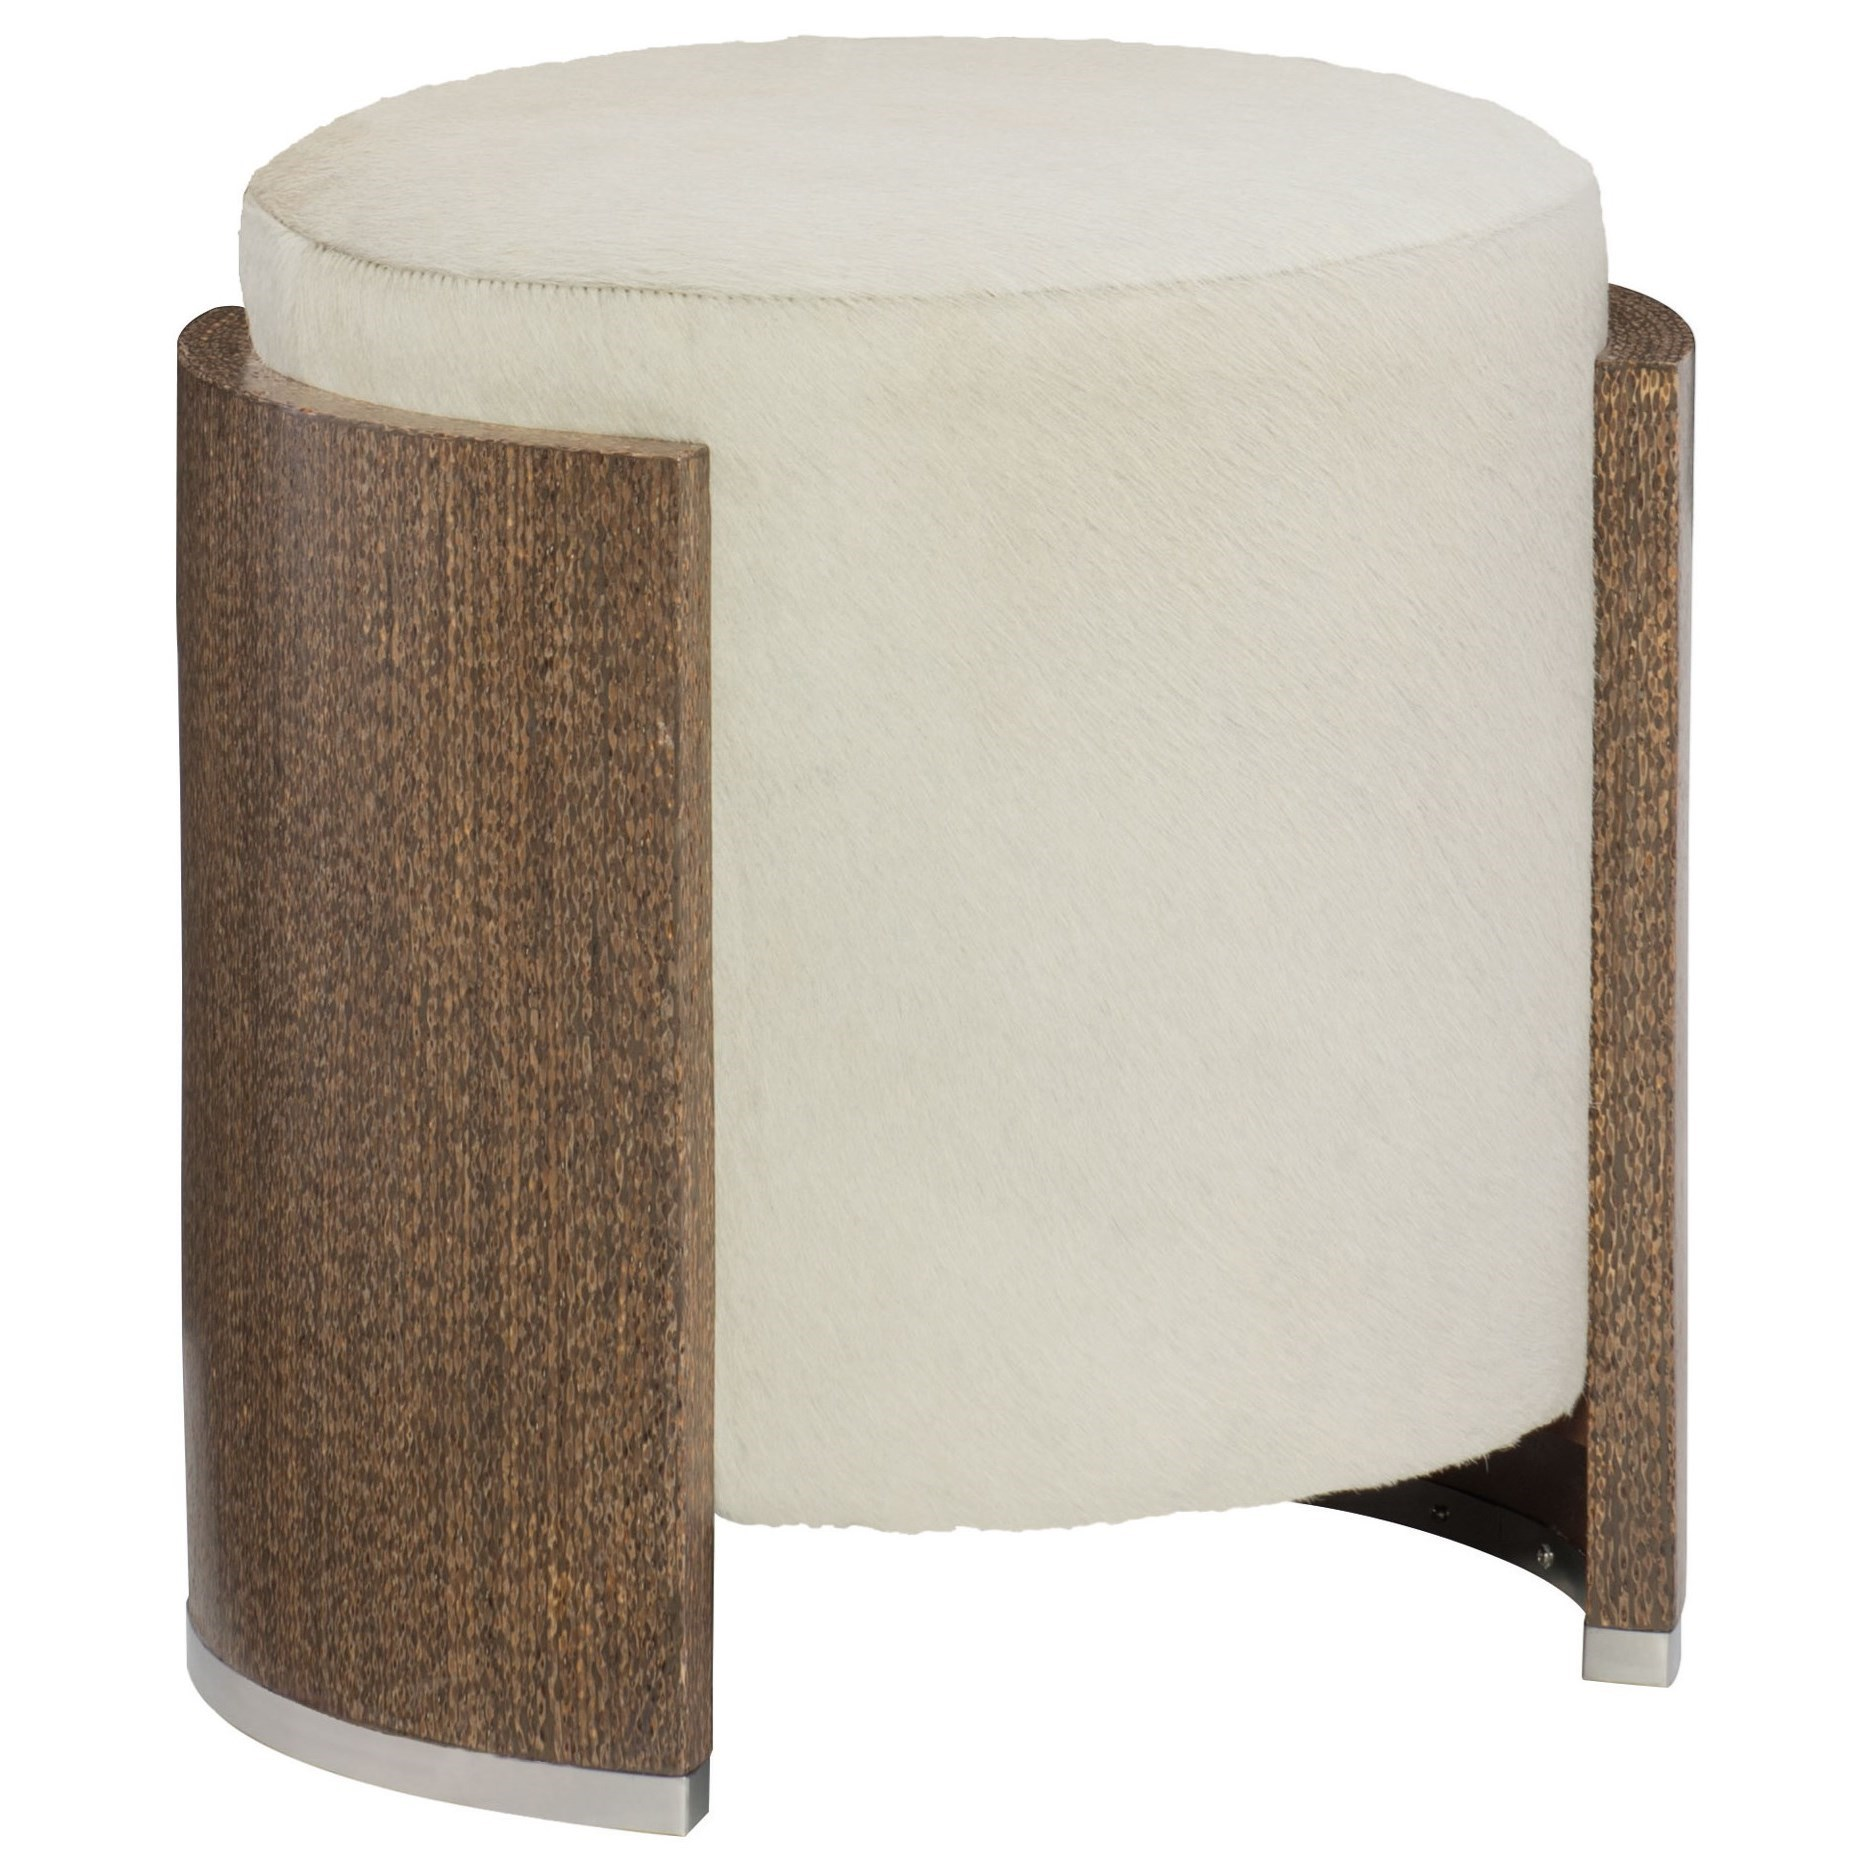 Bernhardt Barrows Contemporary Round Accent Ottoman With Wood Frame